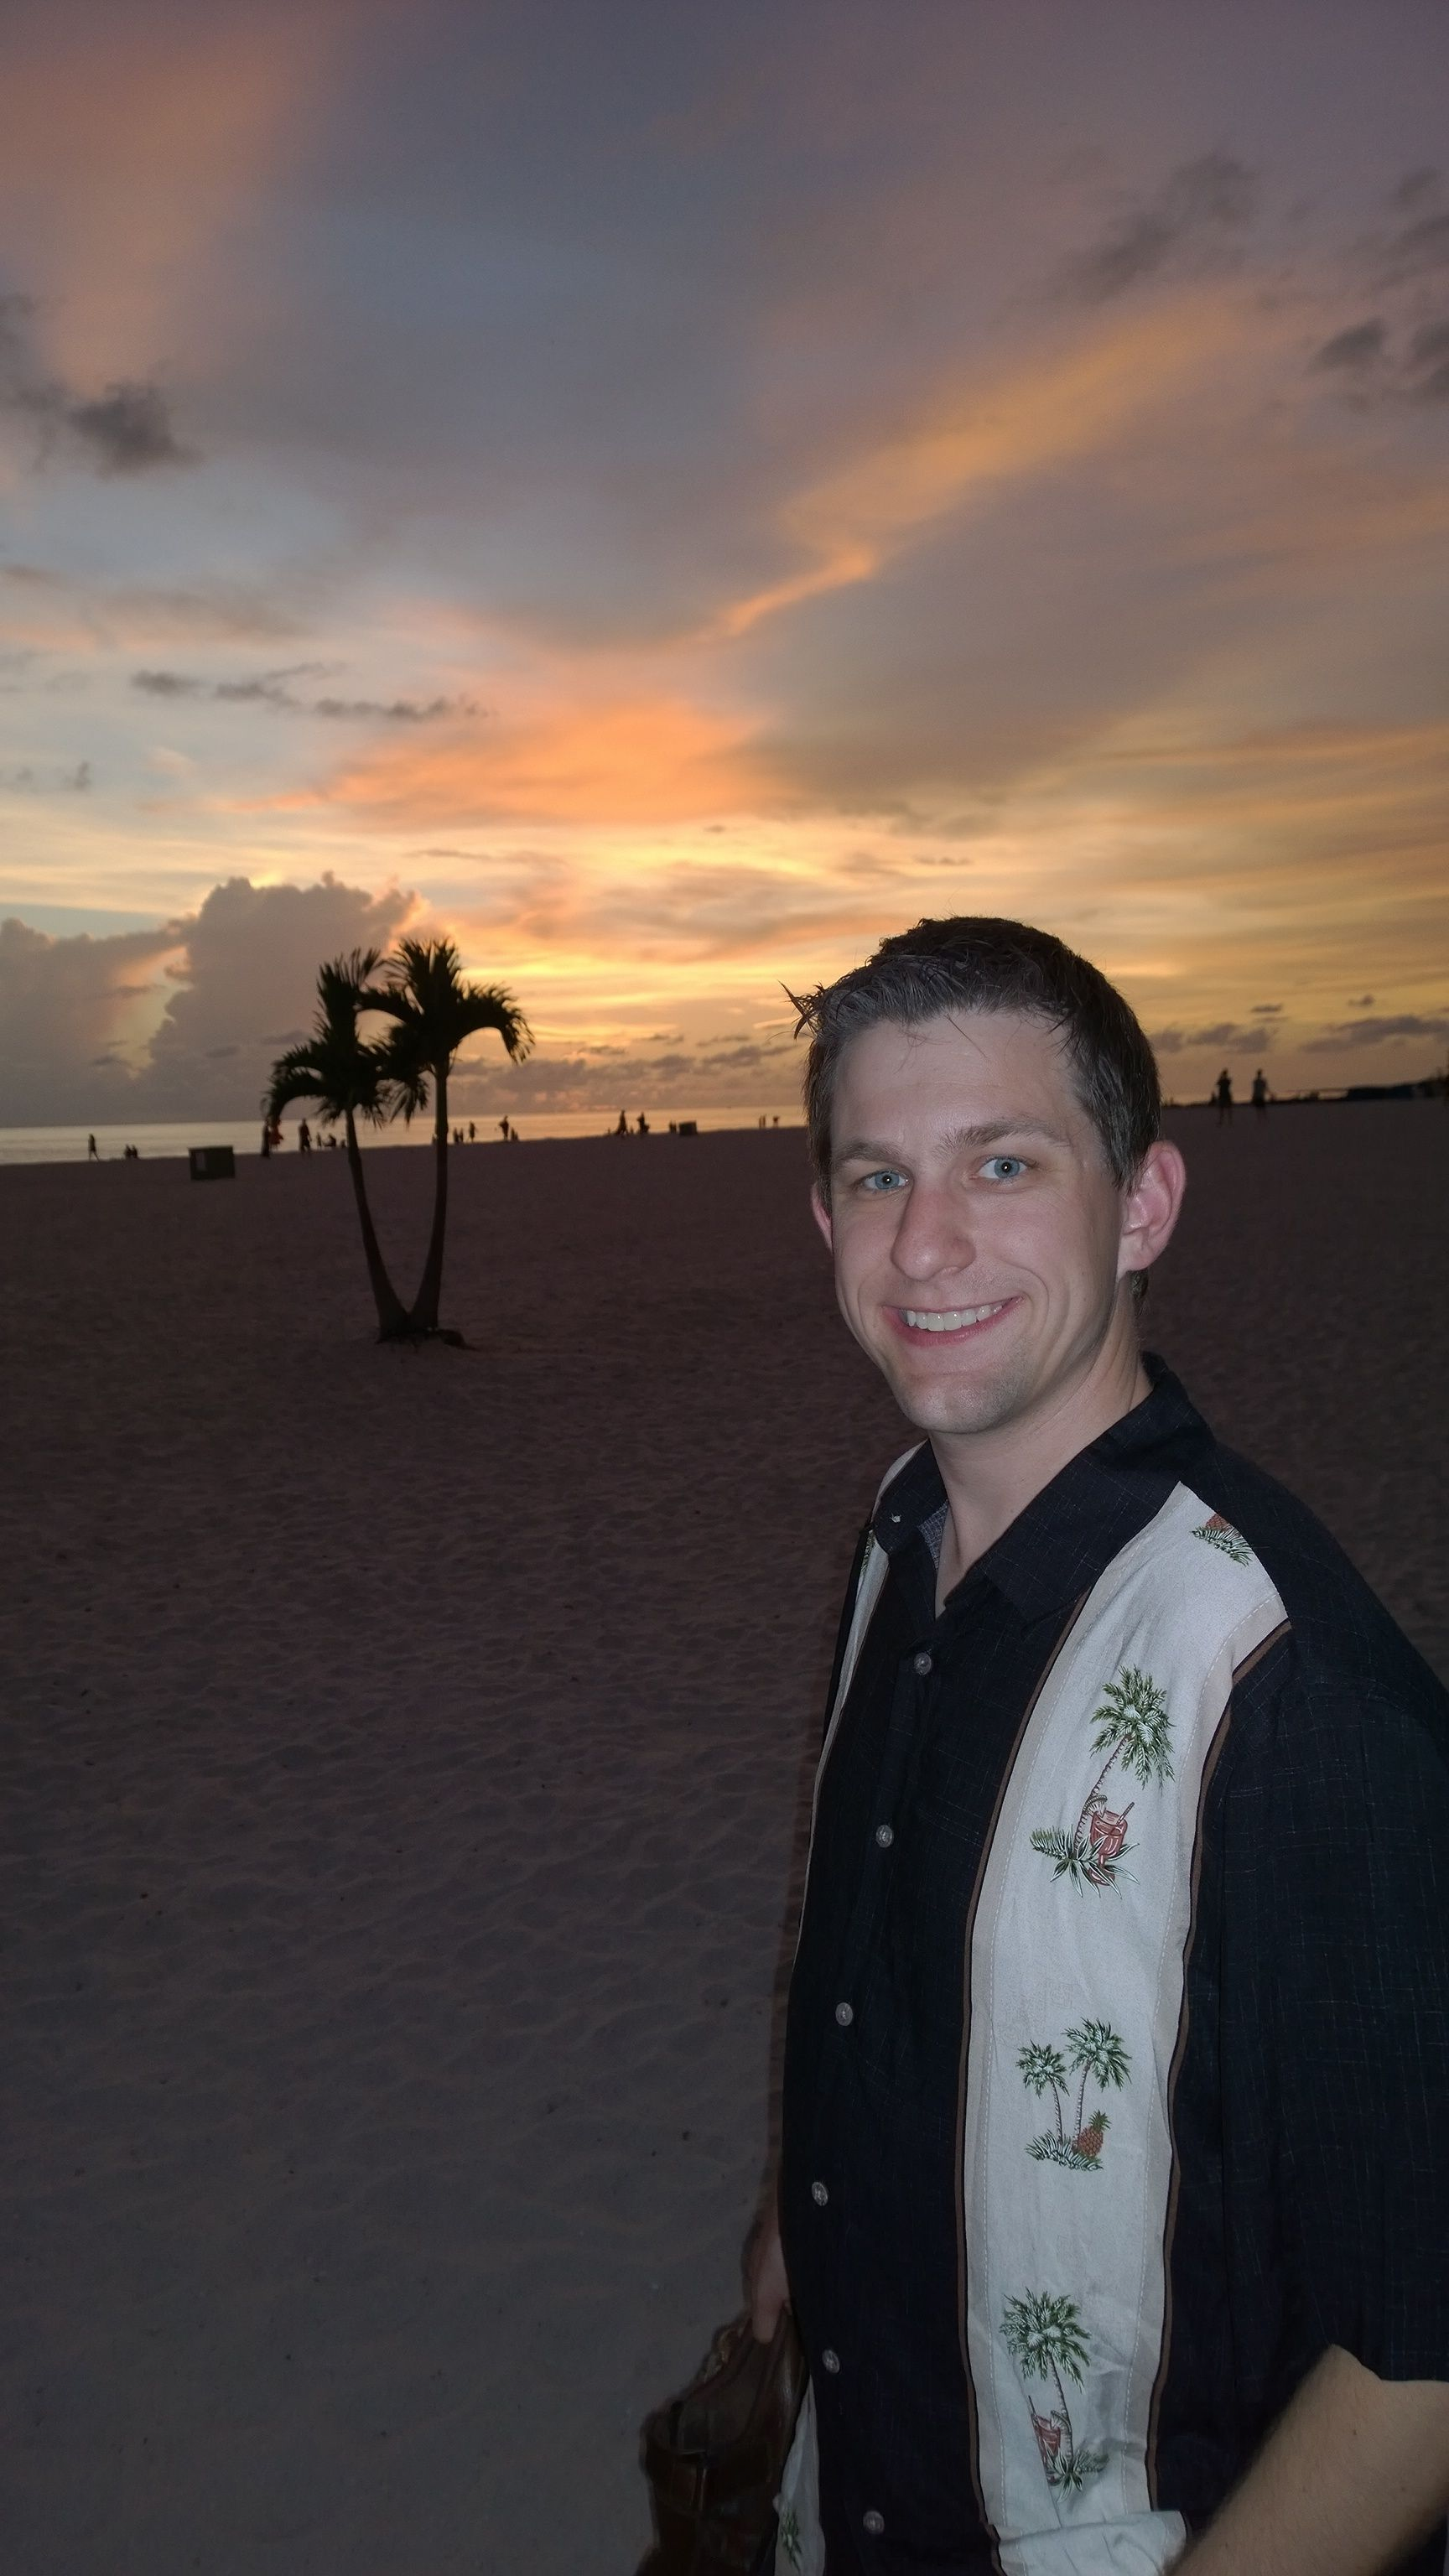 satellite beach singles Florida satellite beach catholic singles we offer a truly catholic environment, thousands of members, and highly compatible matches based on your personality, shared faith, and lifestyle.